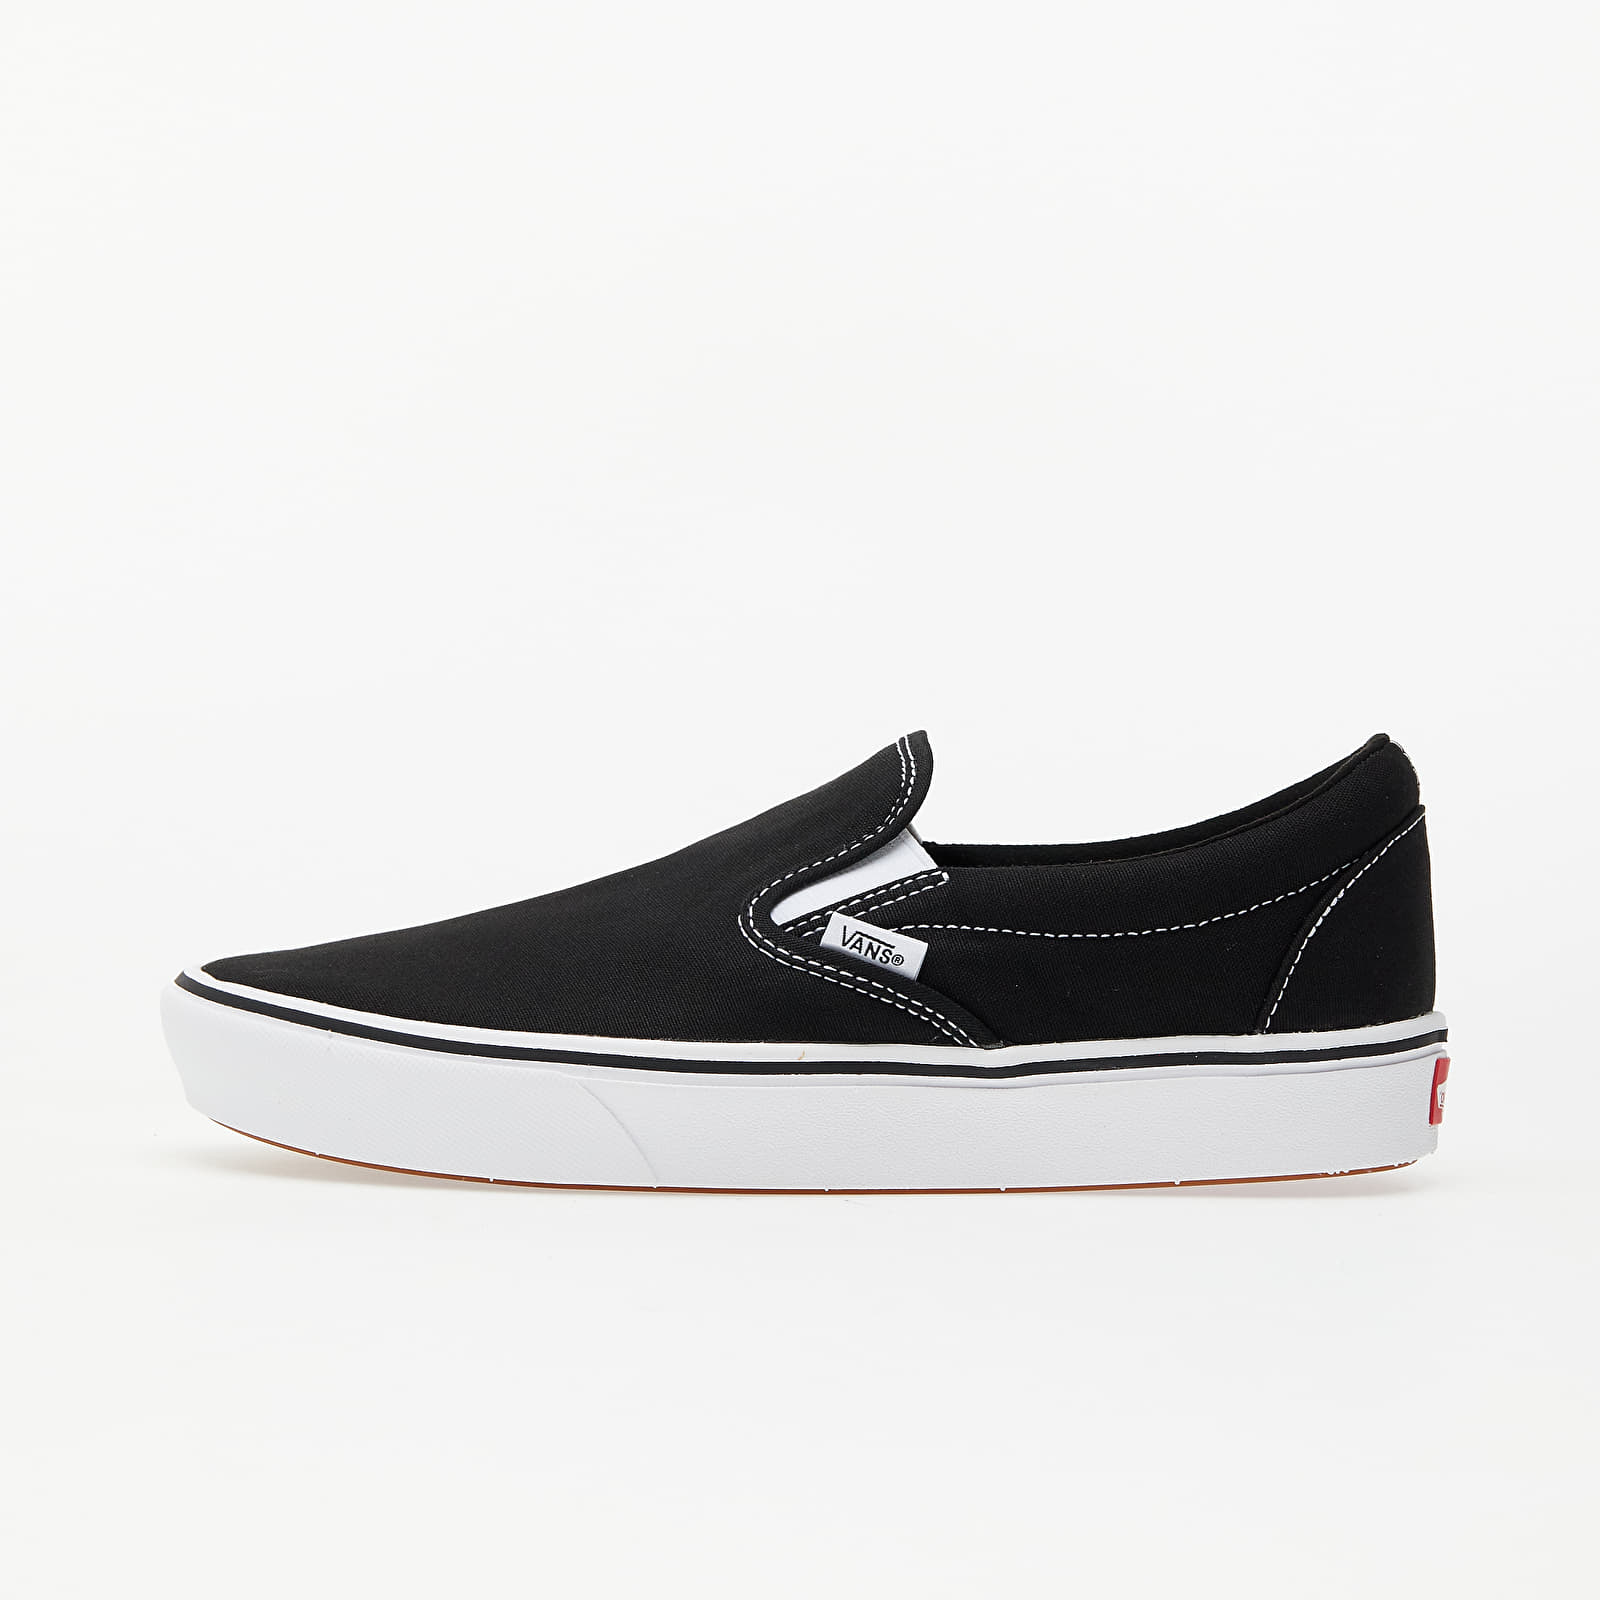 Vans ComfyCush Slip-On (Classic) Black/ True White EUR 36.5